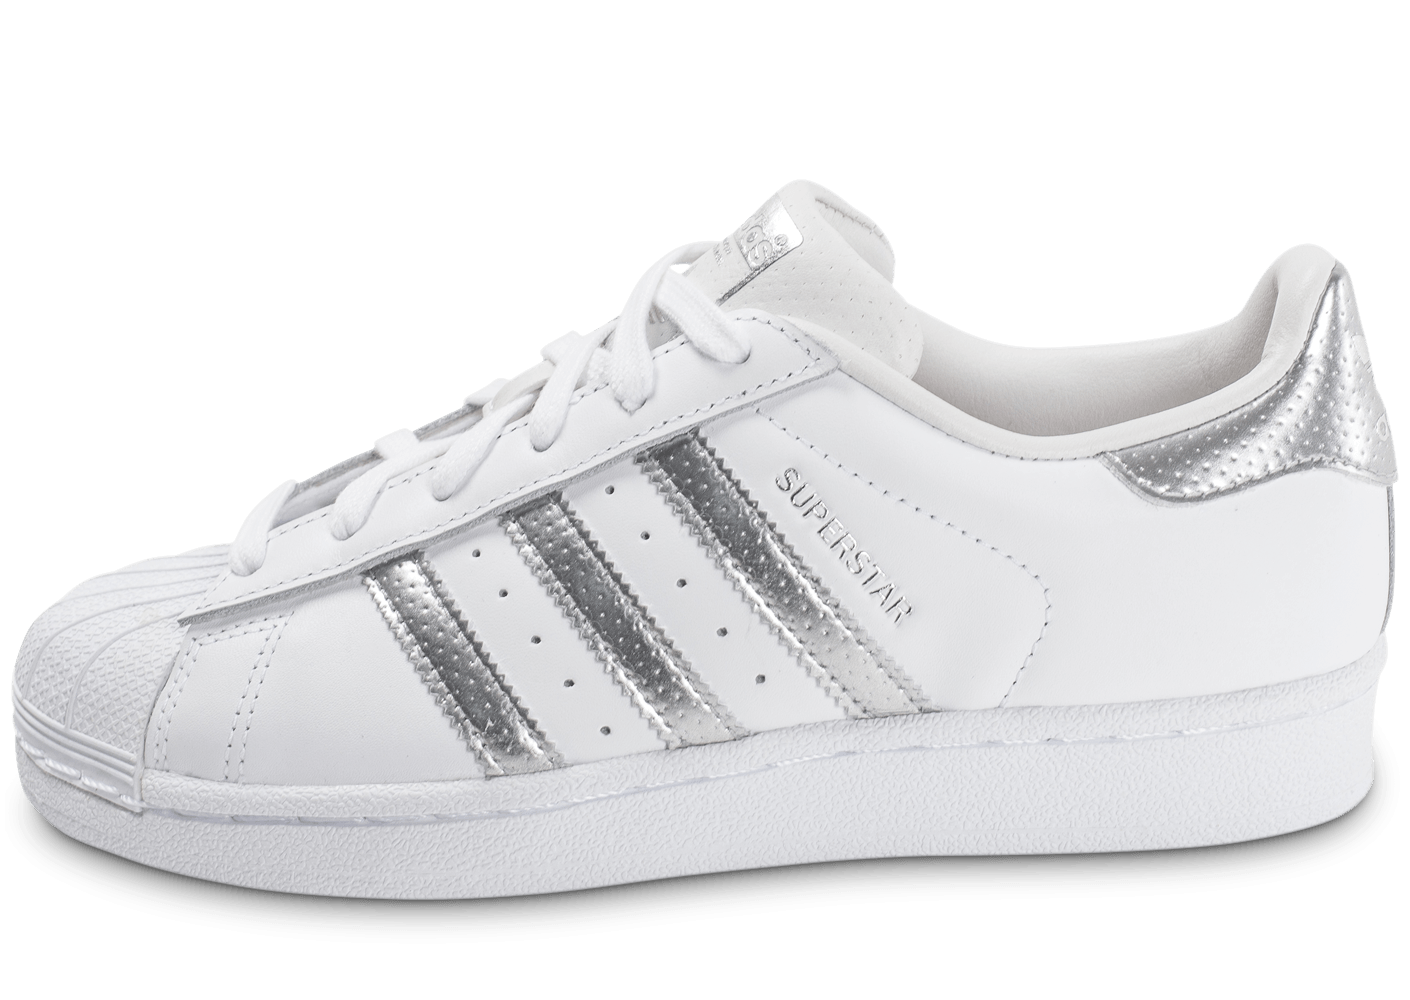 adidas superstar blanche et argent chaussures adidas chausport. Black Bedroom Furniture Sets. Home Design Ideas